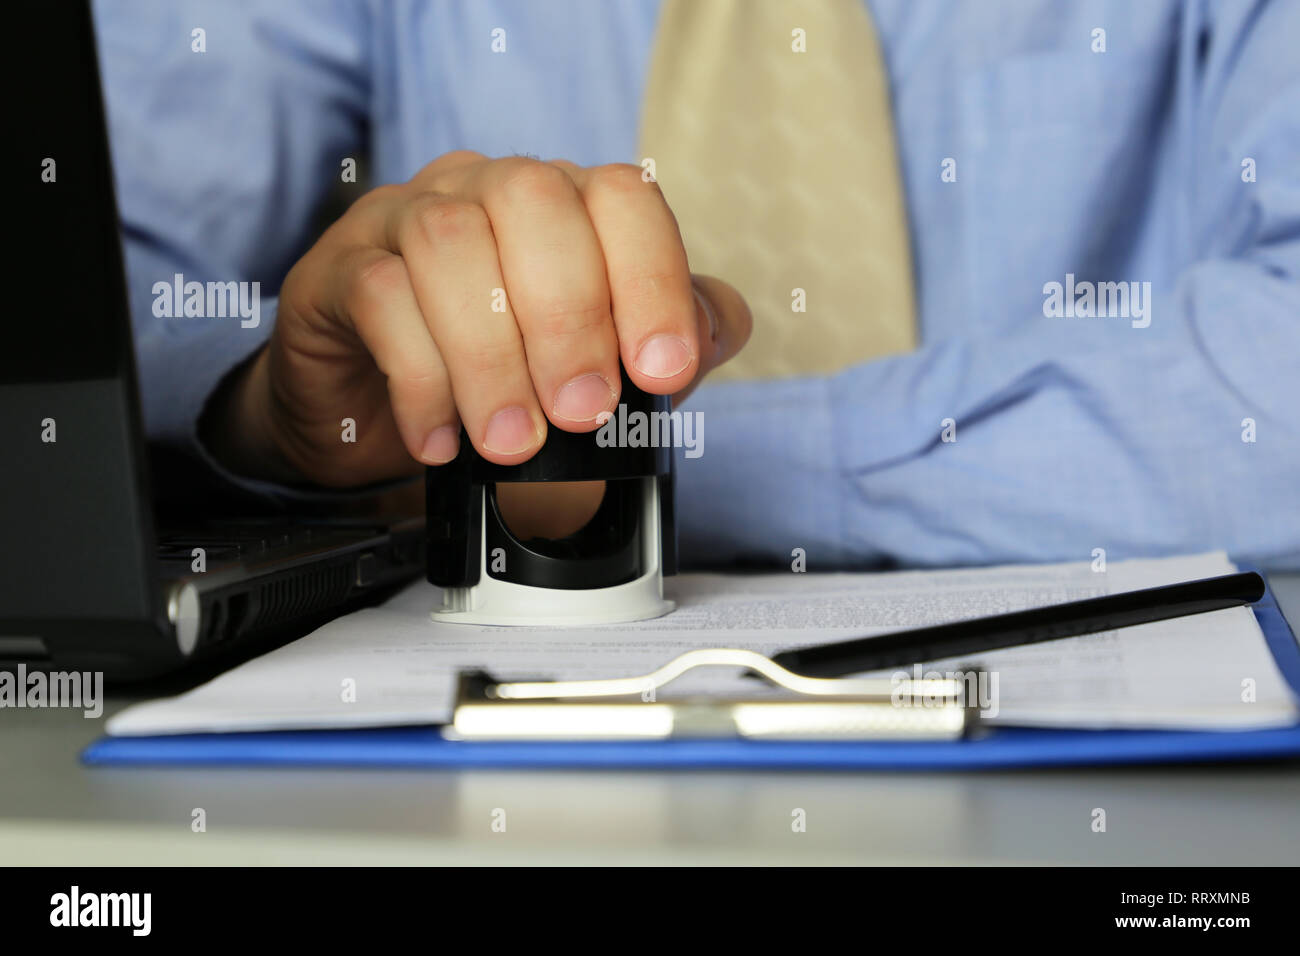 Man in business clothes puts a stamp on the documents in the office. Concept of official, manager, permission, businessman, contract - Stock Photo